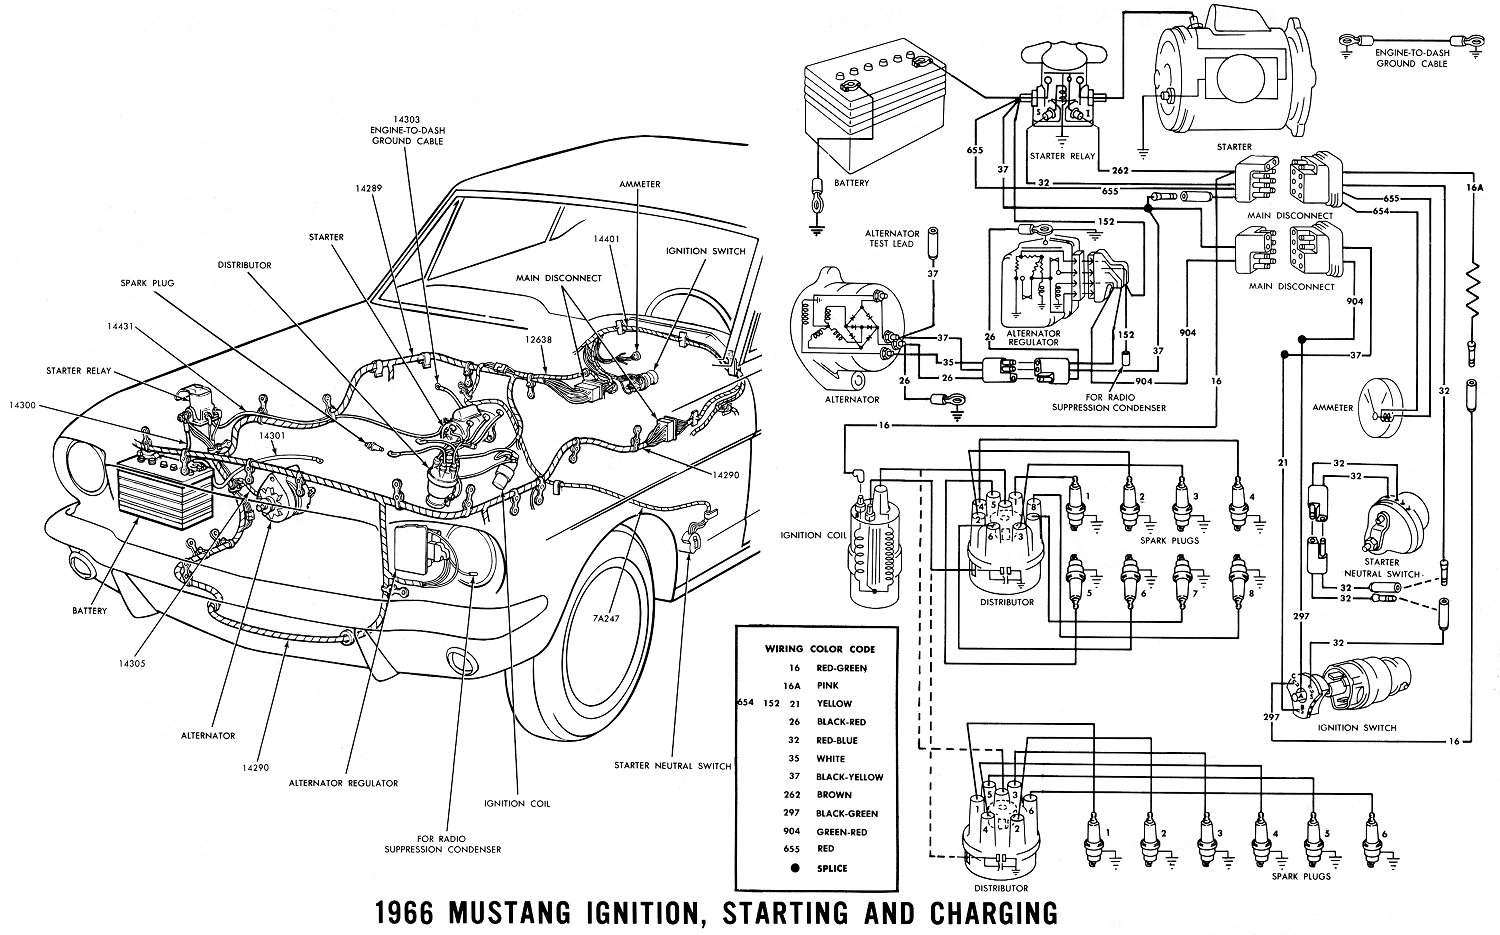 66ignit 1966 mustang wiring diagrams average joe restoration 1965 mustang ignition switch wiring diagram at gsmx.co